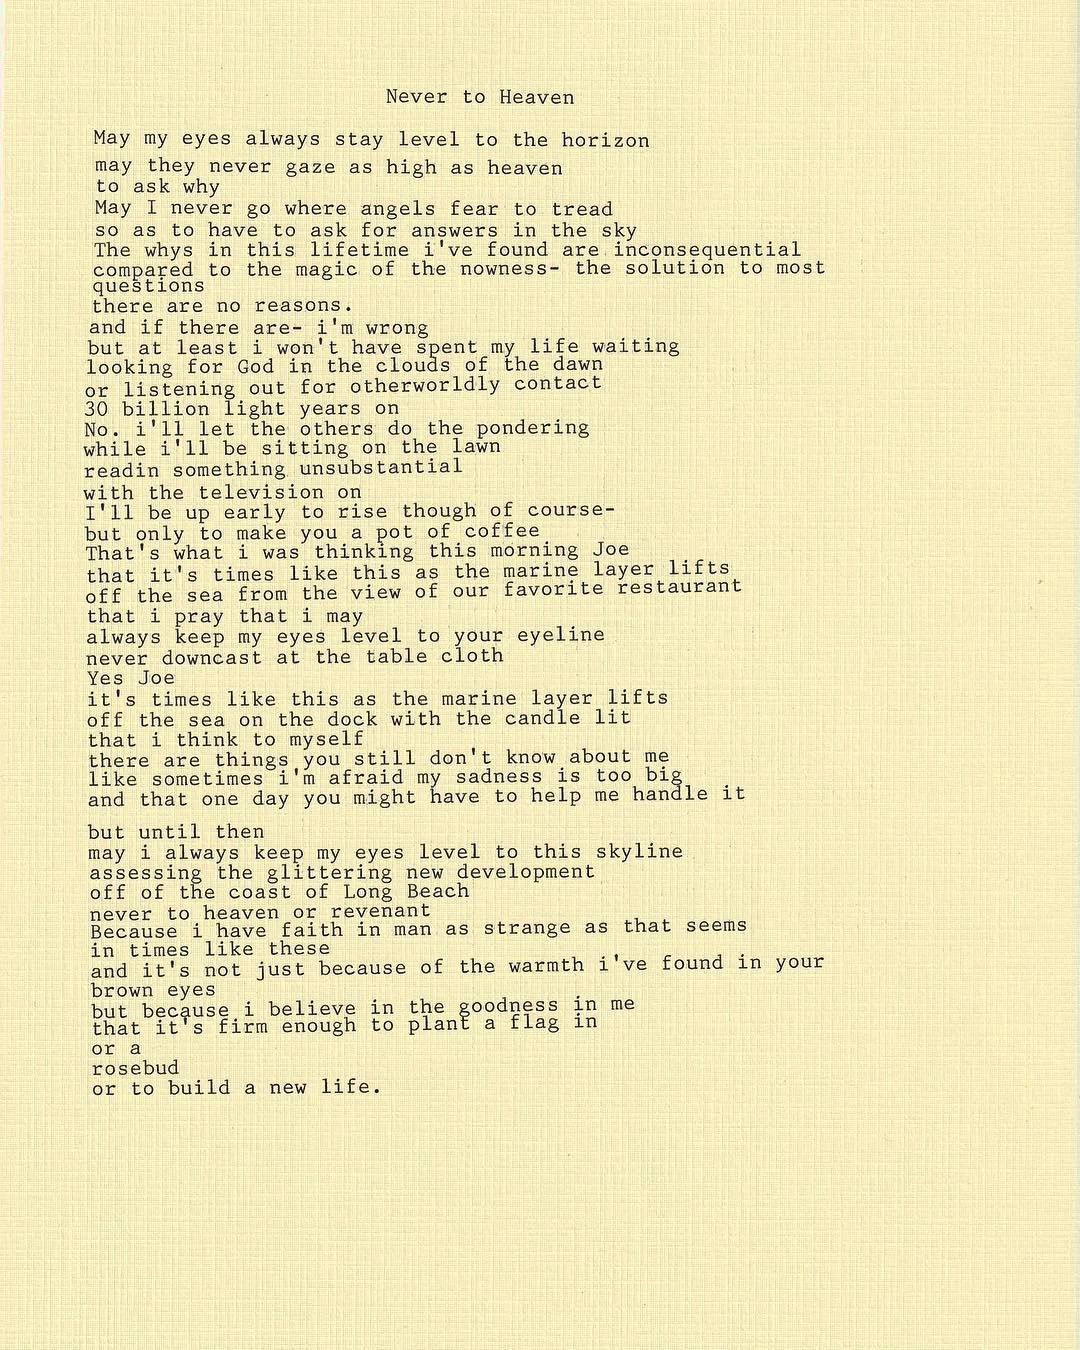 Never To Heaven By Lana Del Rey Pretty Words Lana Del Rey Lana Del Rey Lyrics